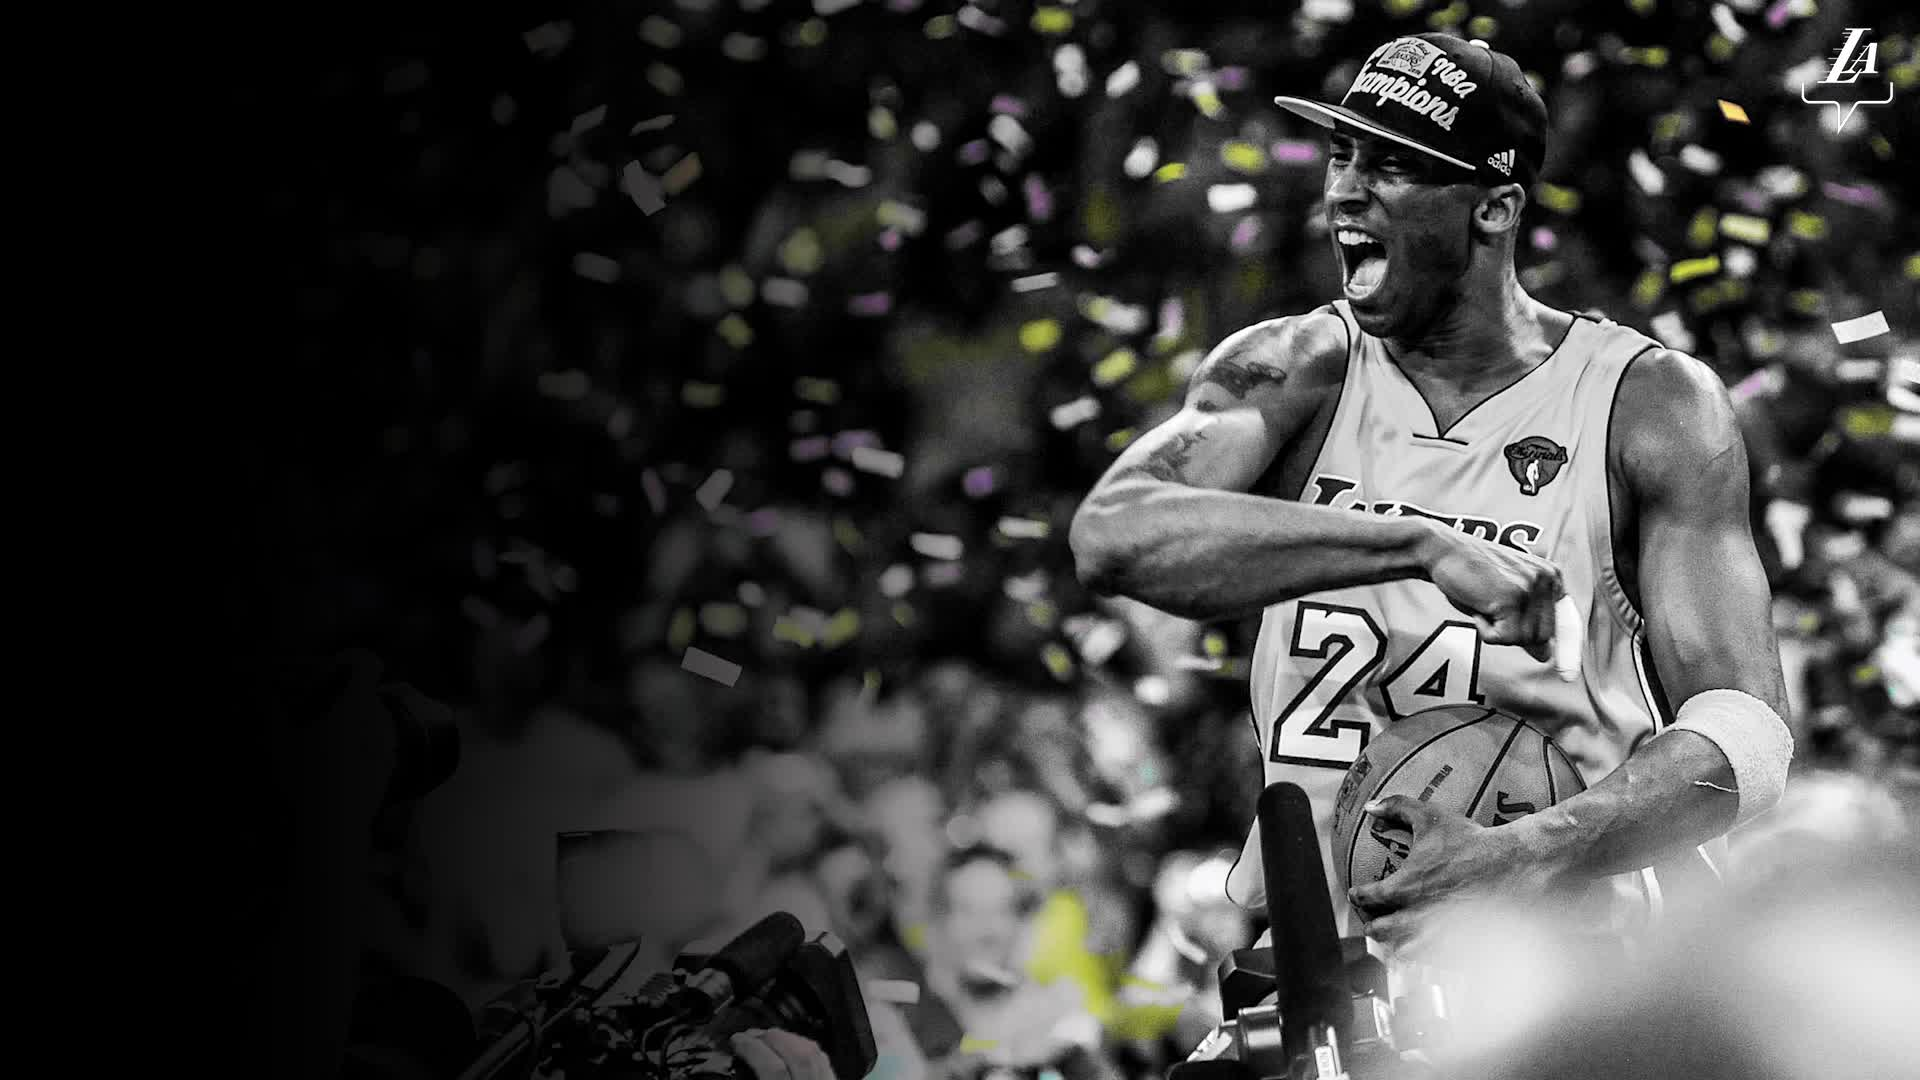 You changed the game. You inspired the world. Thank you, Kobe.